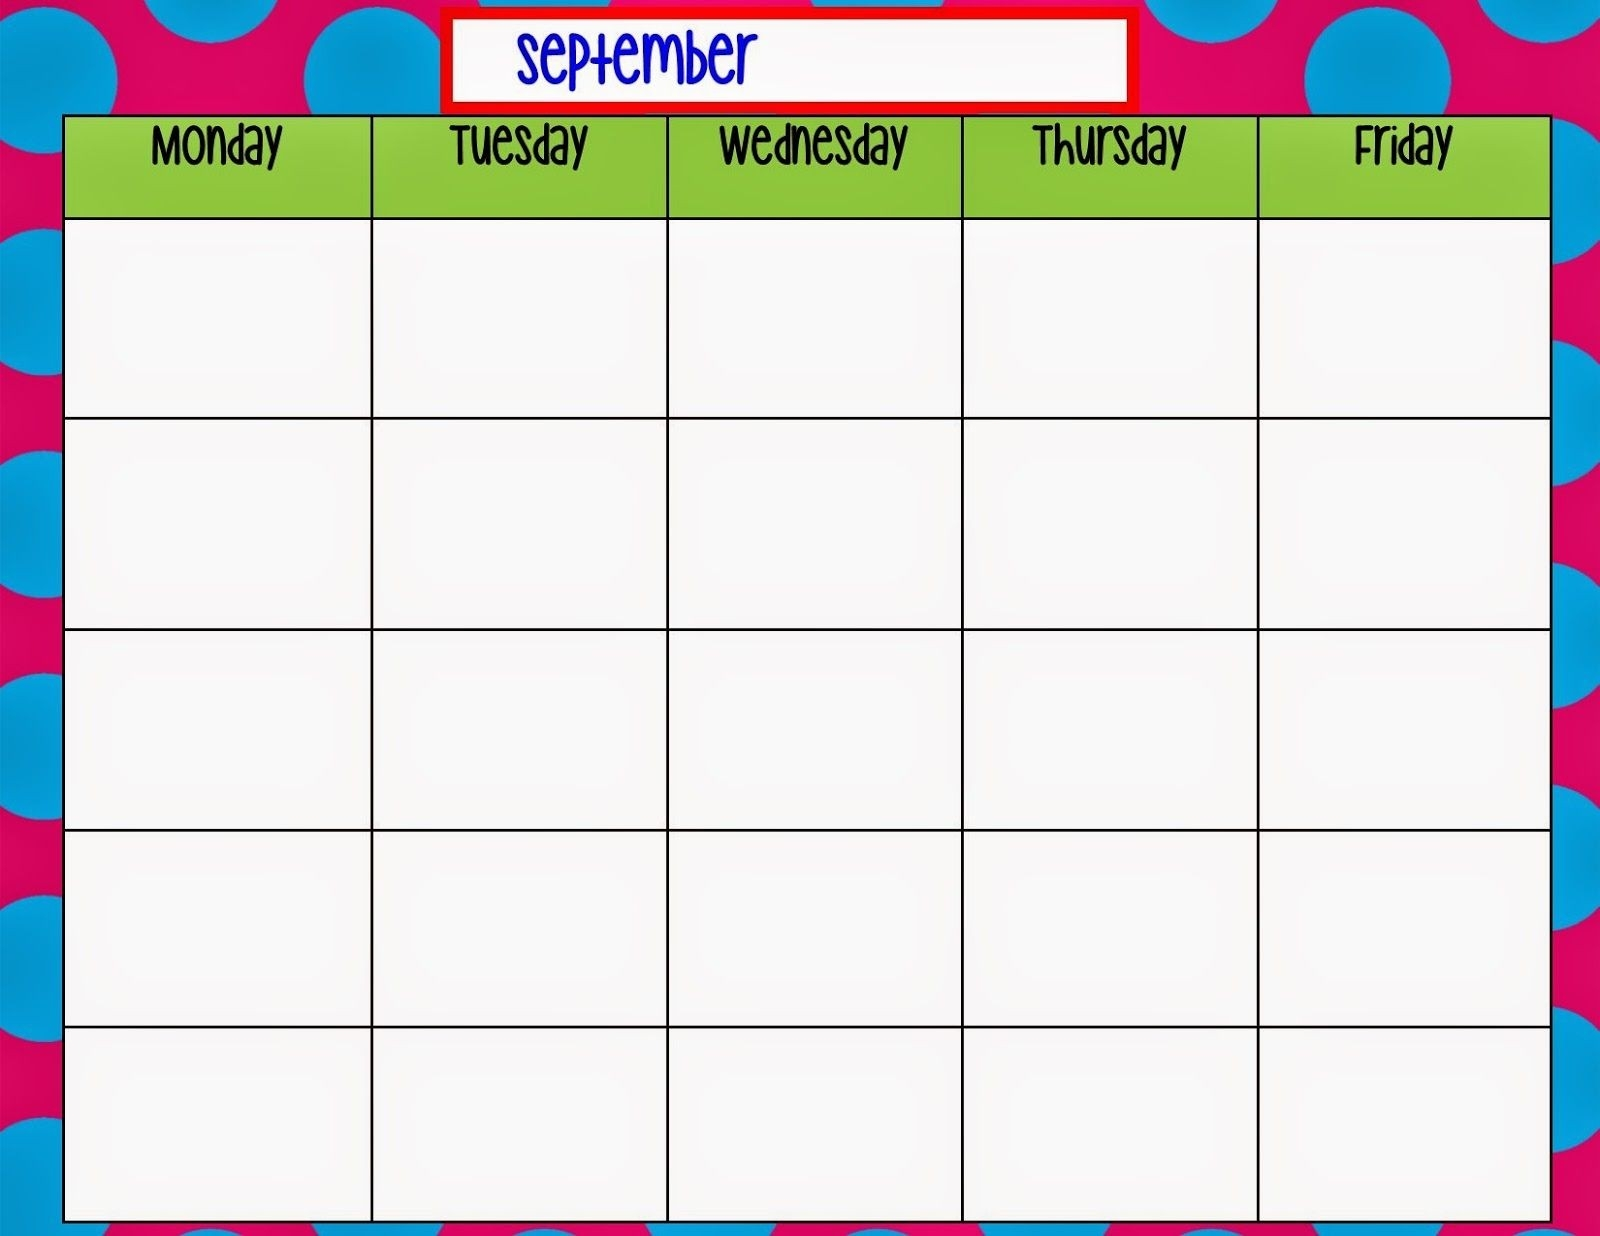 Monday Through Friday Calendar Template | Weekly Calendar-Downloadable Monday Thru Friday Calendar Template